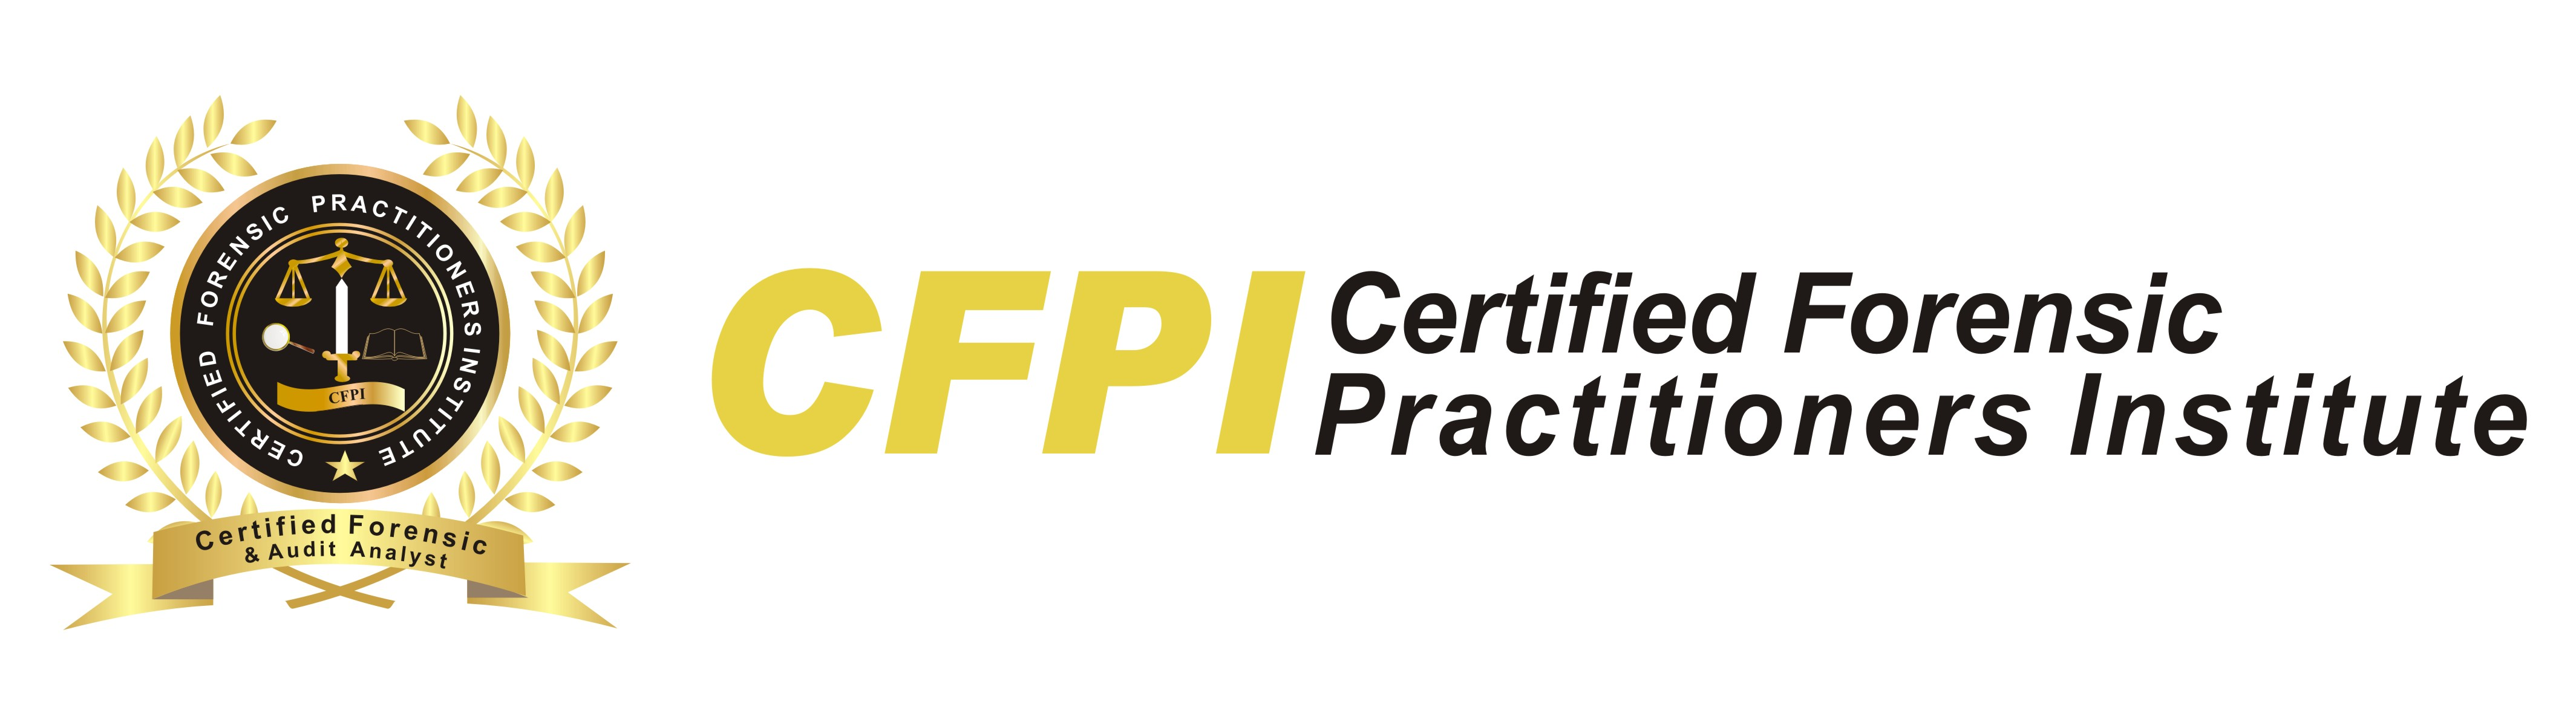 Certified Forensic Practitioners Institute, Inc